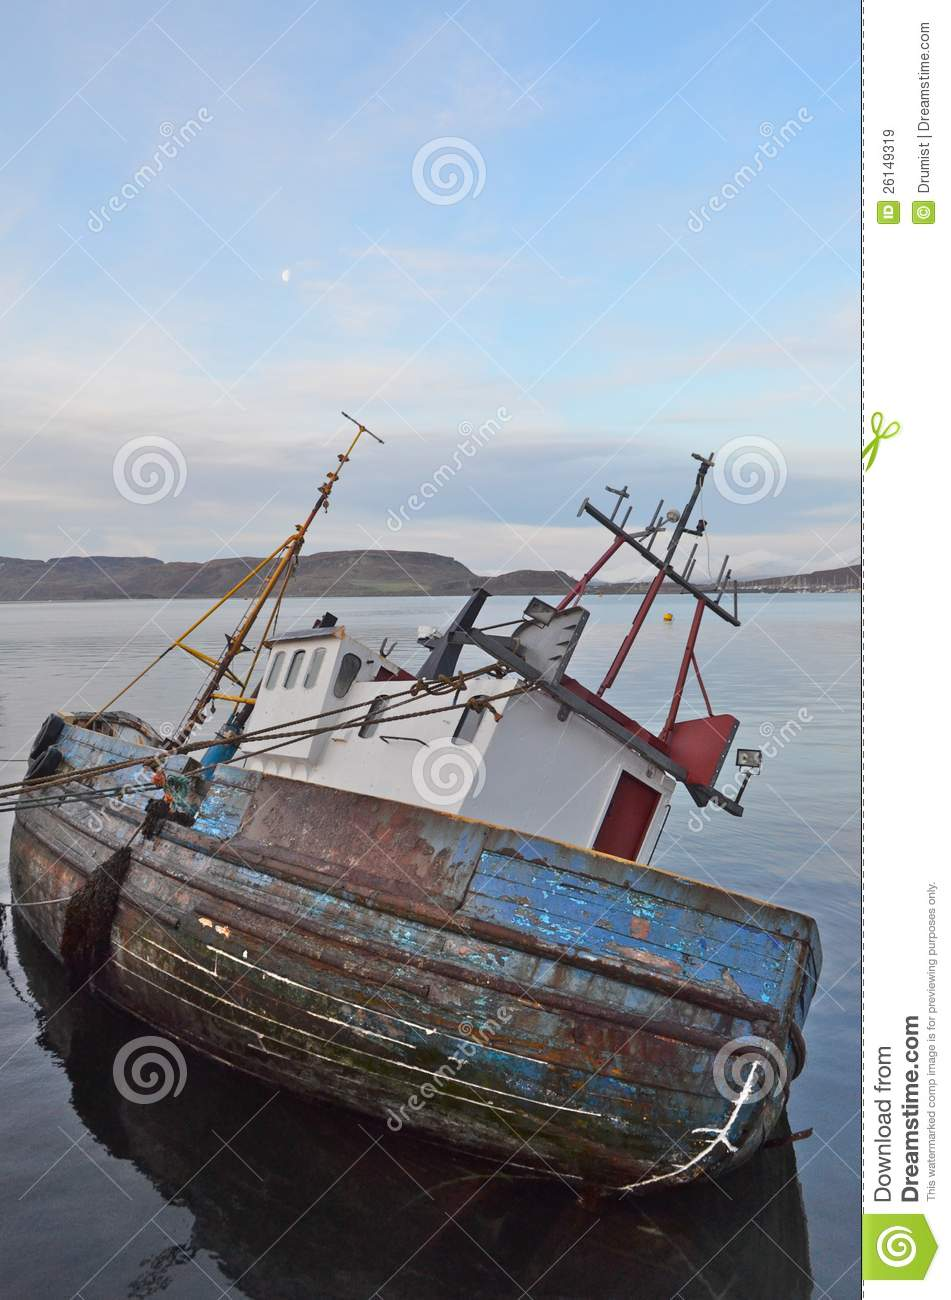 Old wooden fishing boat stock image. Image of planks - 26149319